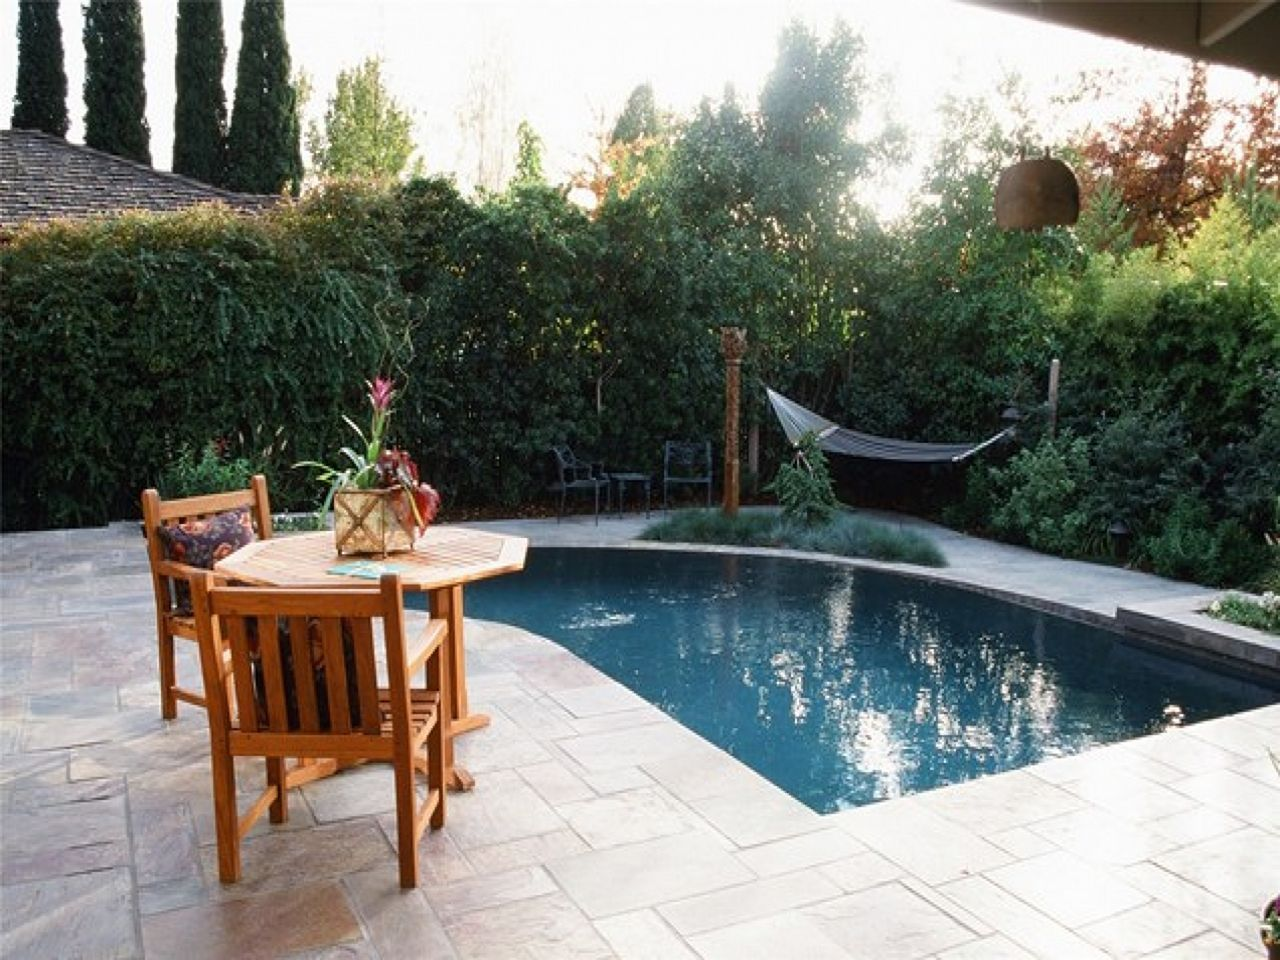 15 Incredible Small Landscaping Design With Mini Pool Ideas Pools For Small Yards Small Backyard Pools Backyard Pool Landscaping Mini pool in backyard